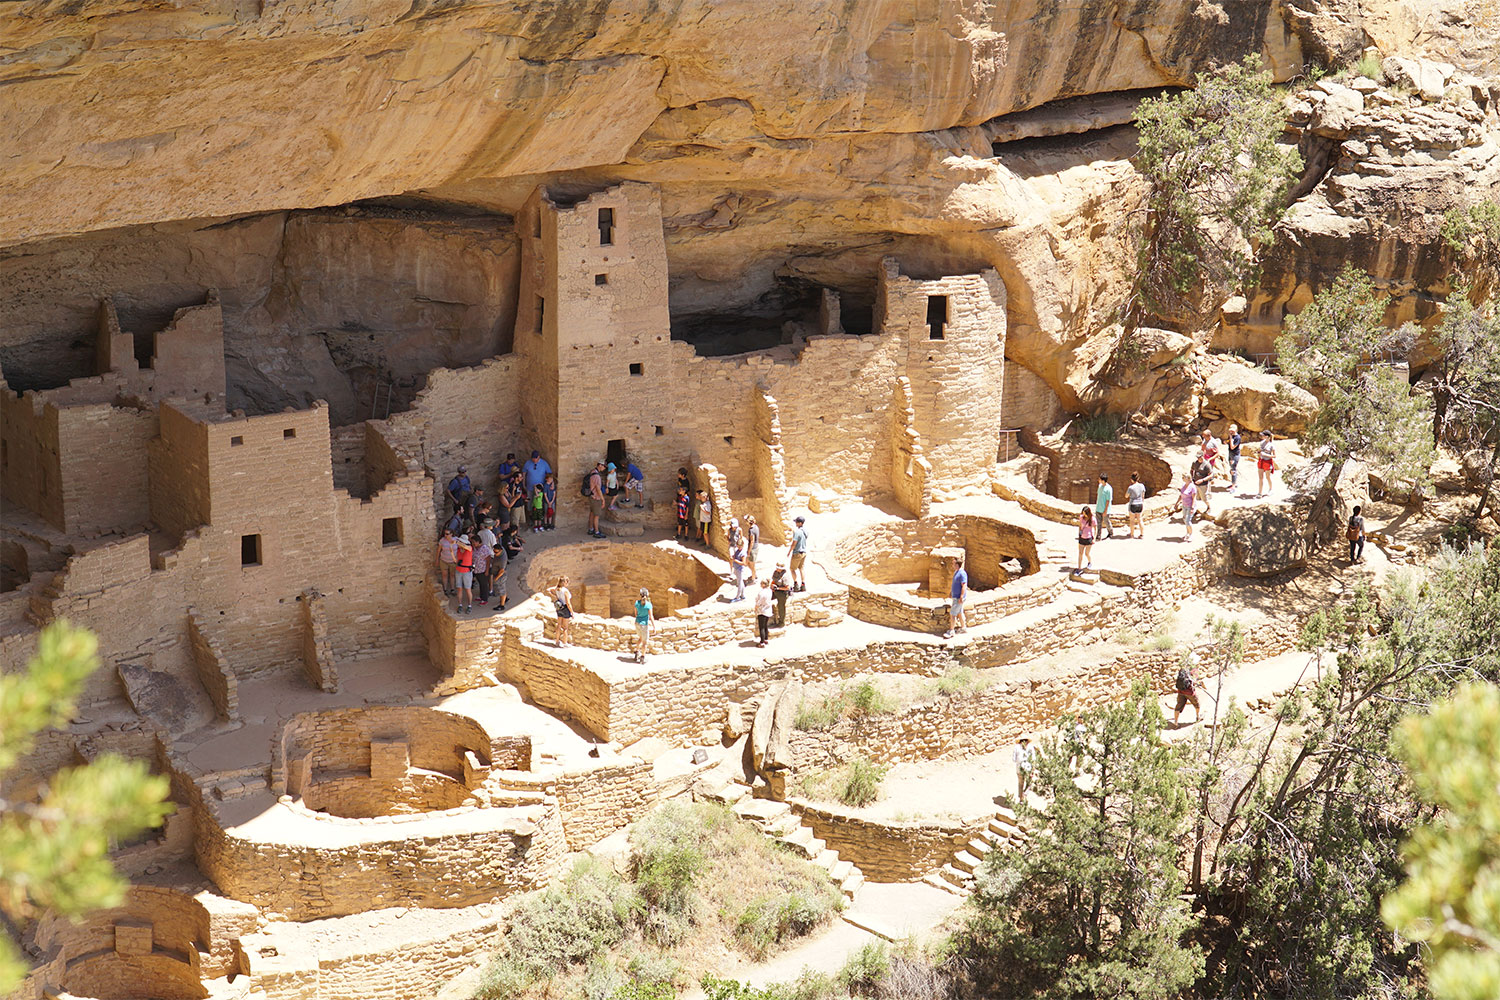 mesa verde national park hispanic single women Vandals permanently damaged sandstone walls and destroyed archeological artifacts in the process of inscribing their names in mesa verde national park.